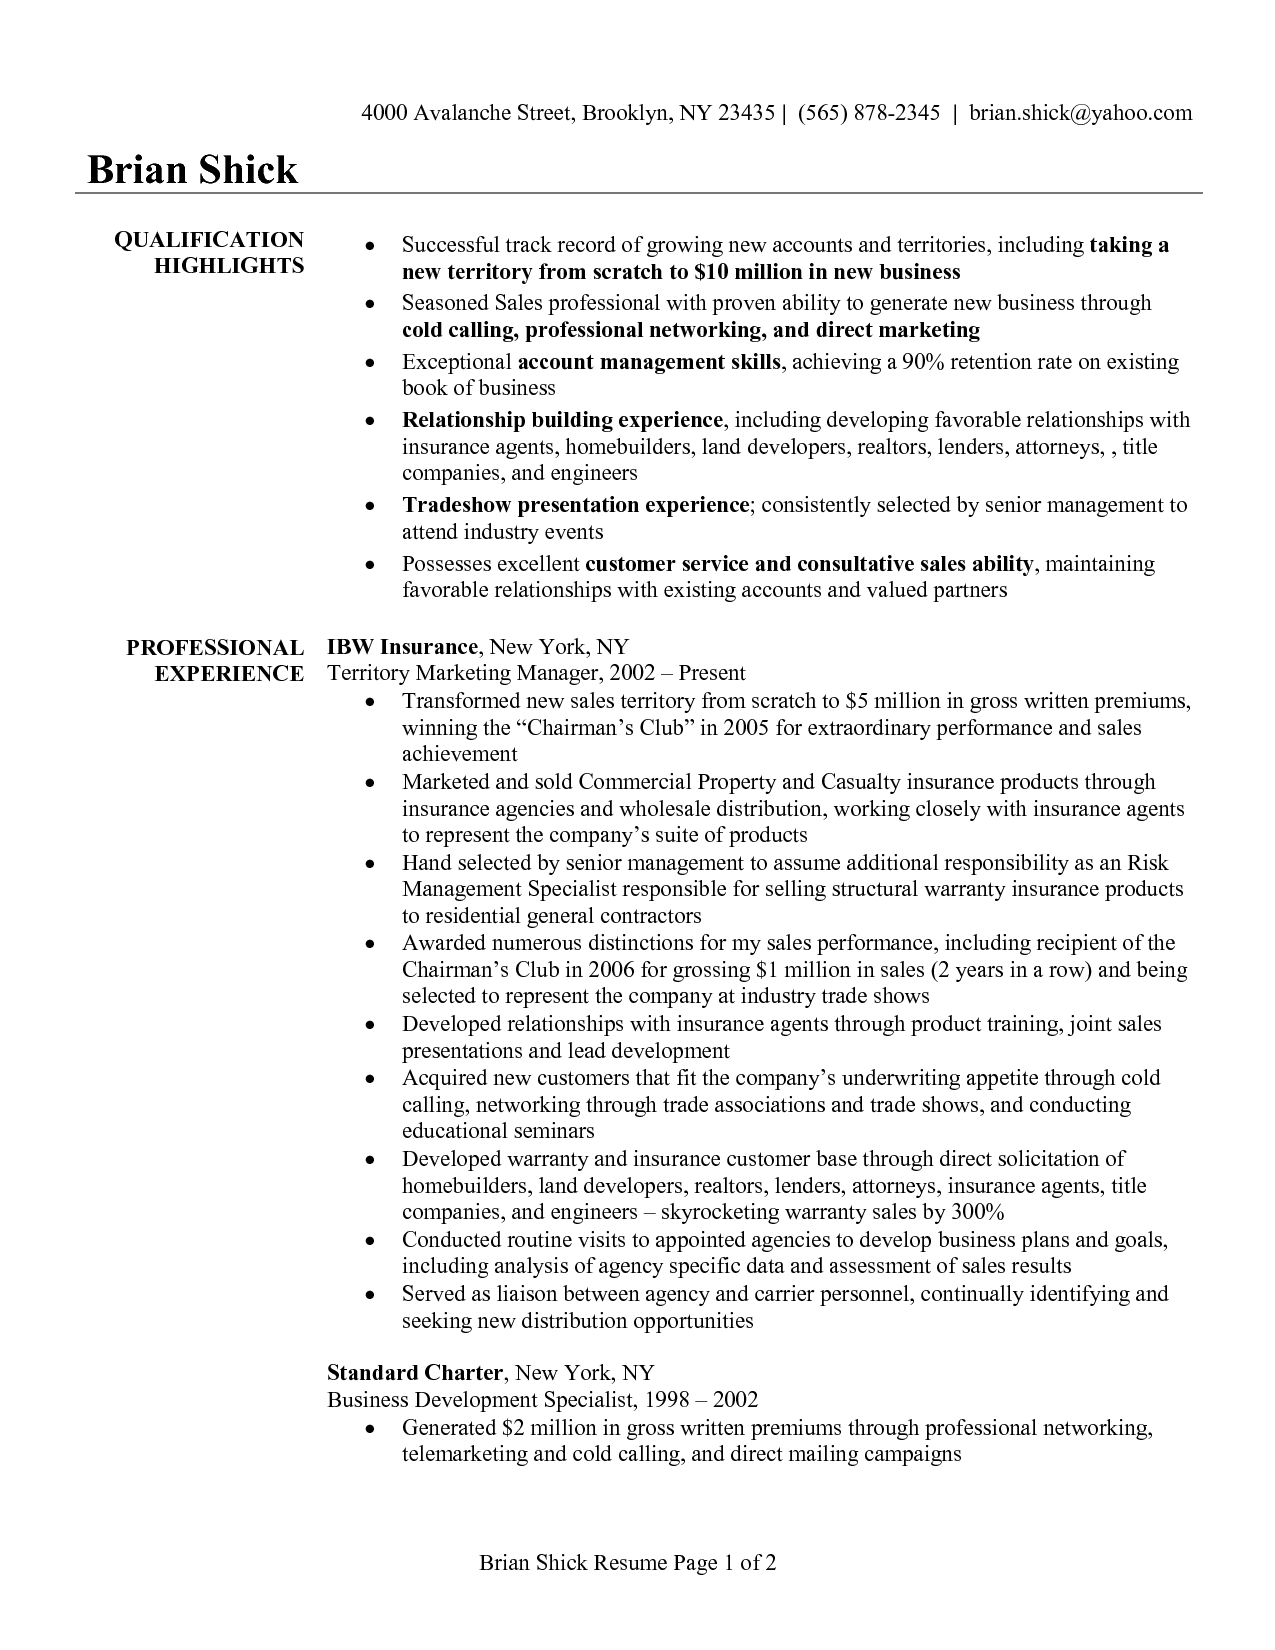 Resume Objective Examples For Healthcare Life Insurance Agent Resumes  Httpwwwjobresumewebsitelife